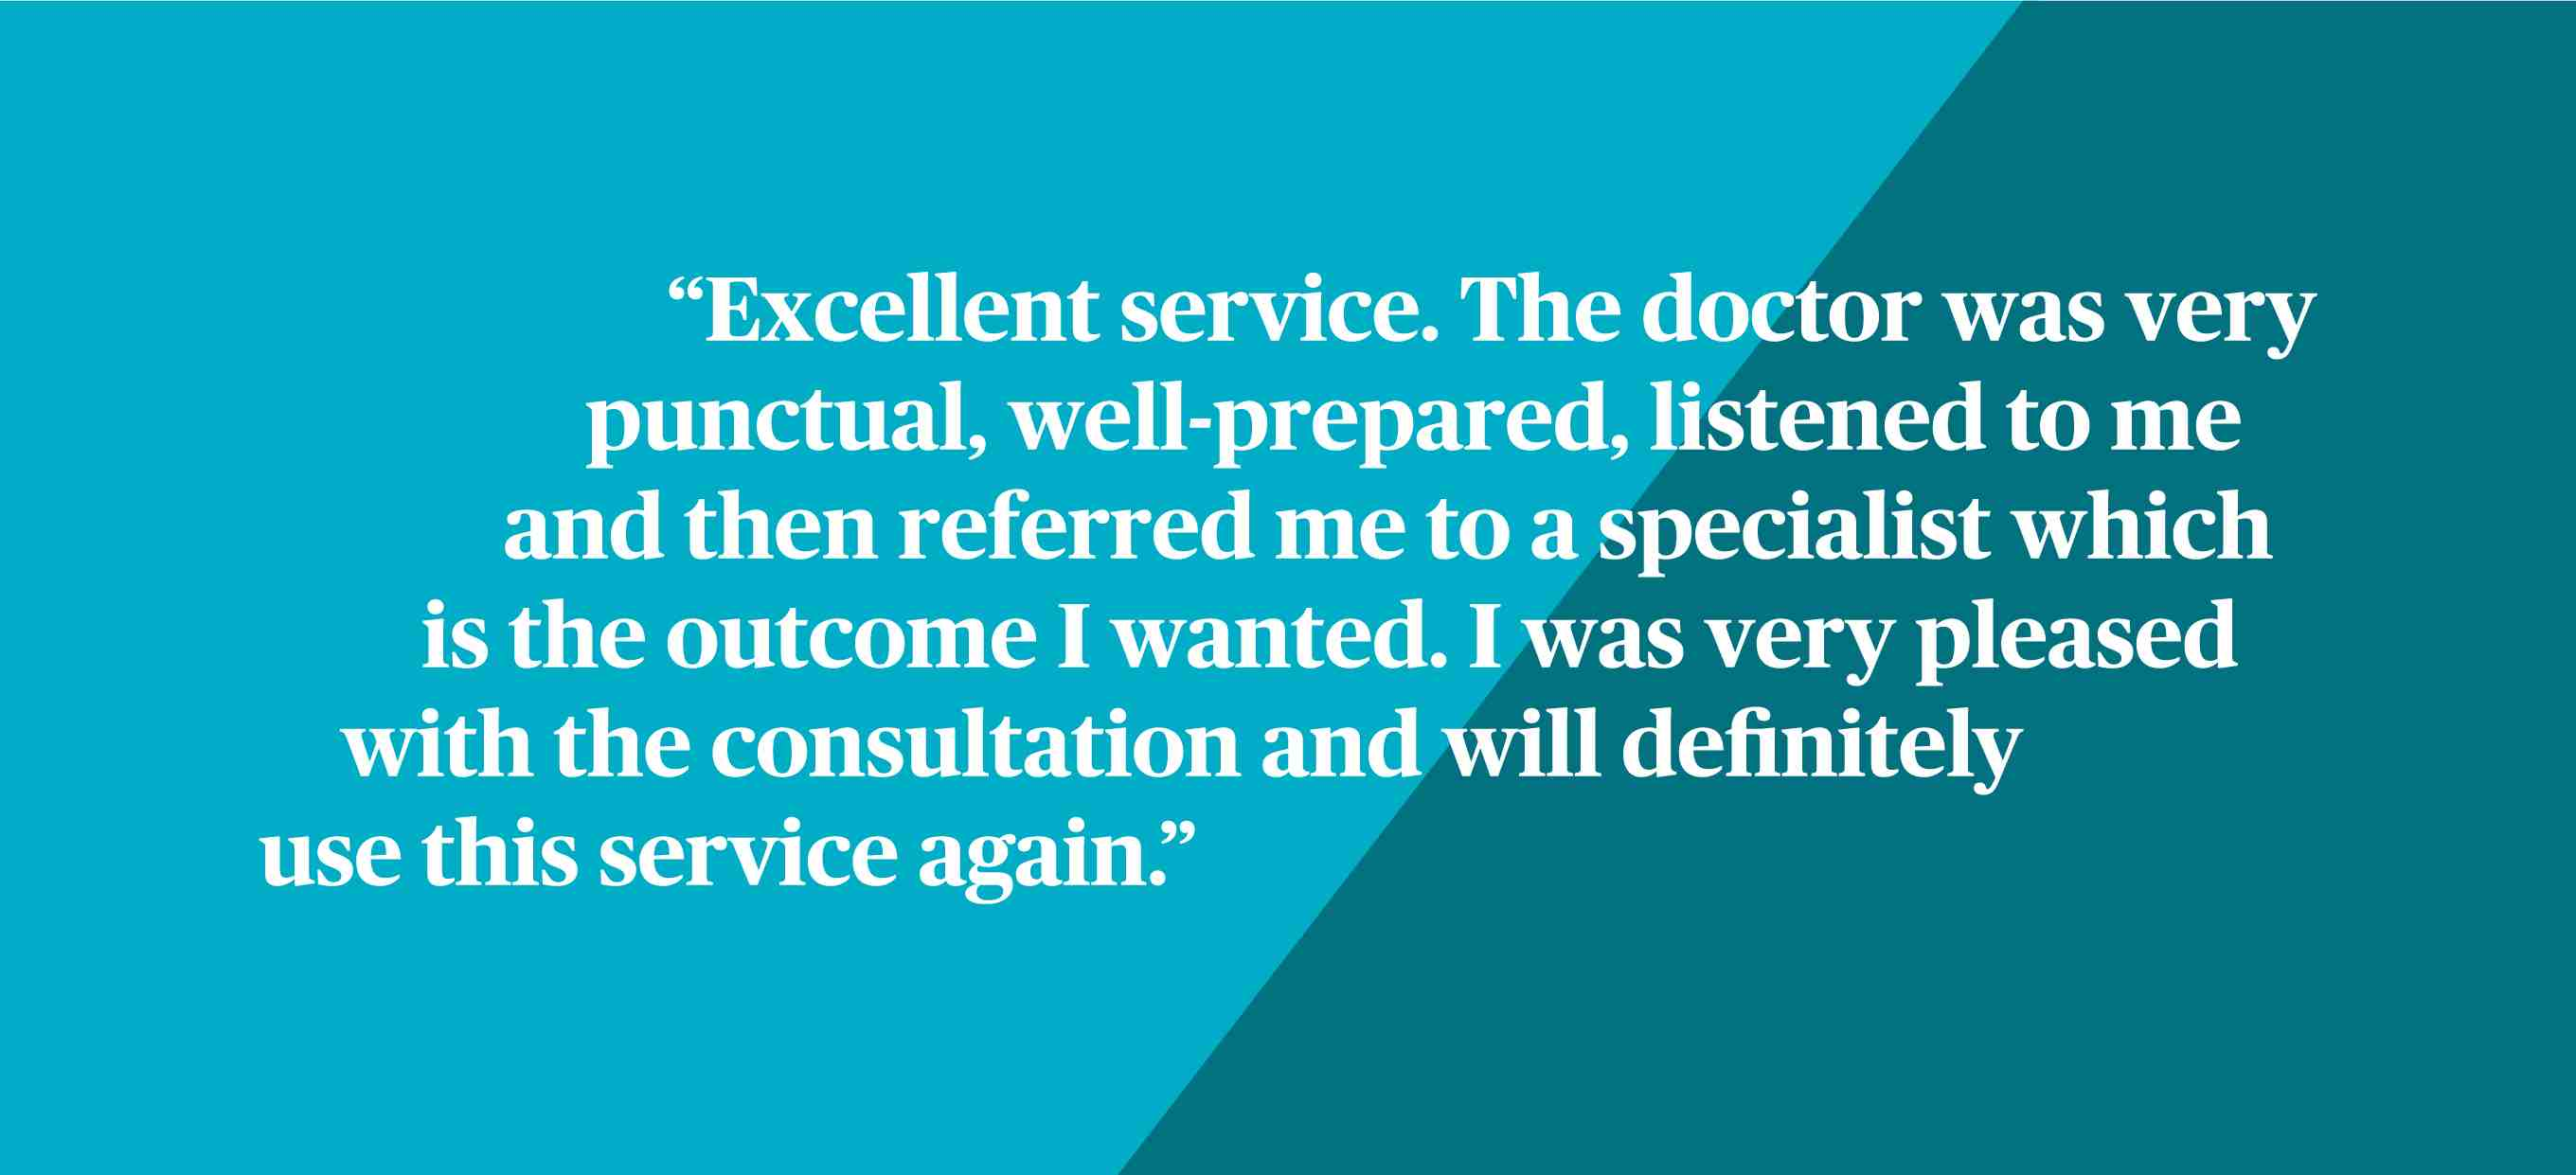 Excellent service. The doctor was very punctual, well-prepared, listened to me and then referred me to a specialist which is the outcome I wanted. I was very pleased with the consultation and will definitely use this service again.